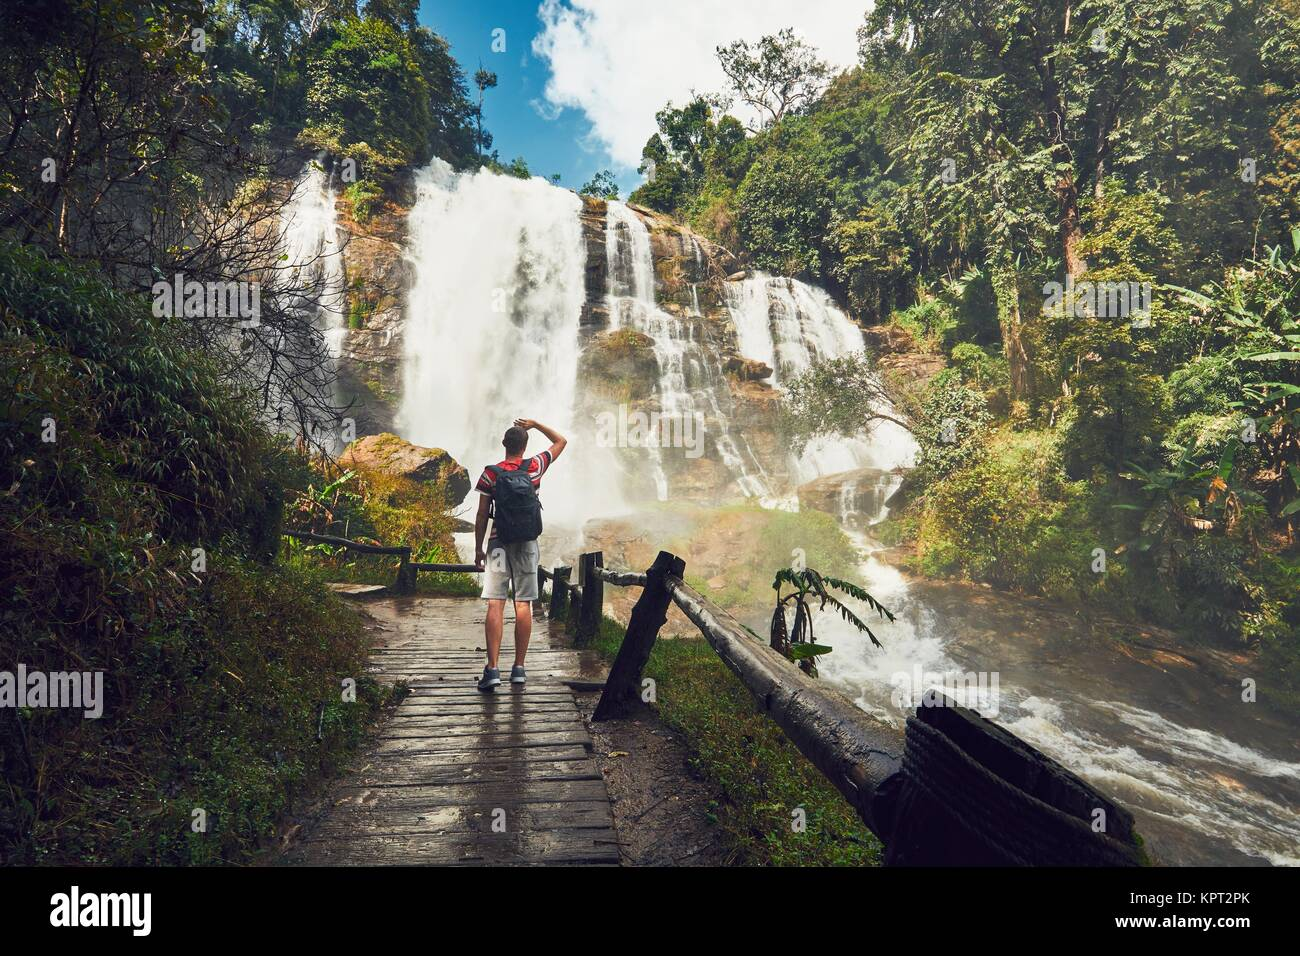 Young man (traveler) standing near Wachirathan waterfall in tropical rainforest. Chiang Mai Province, Thailand - Stock Image